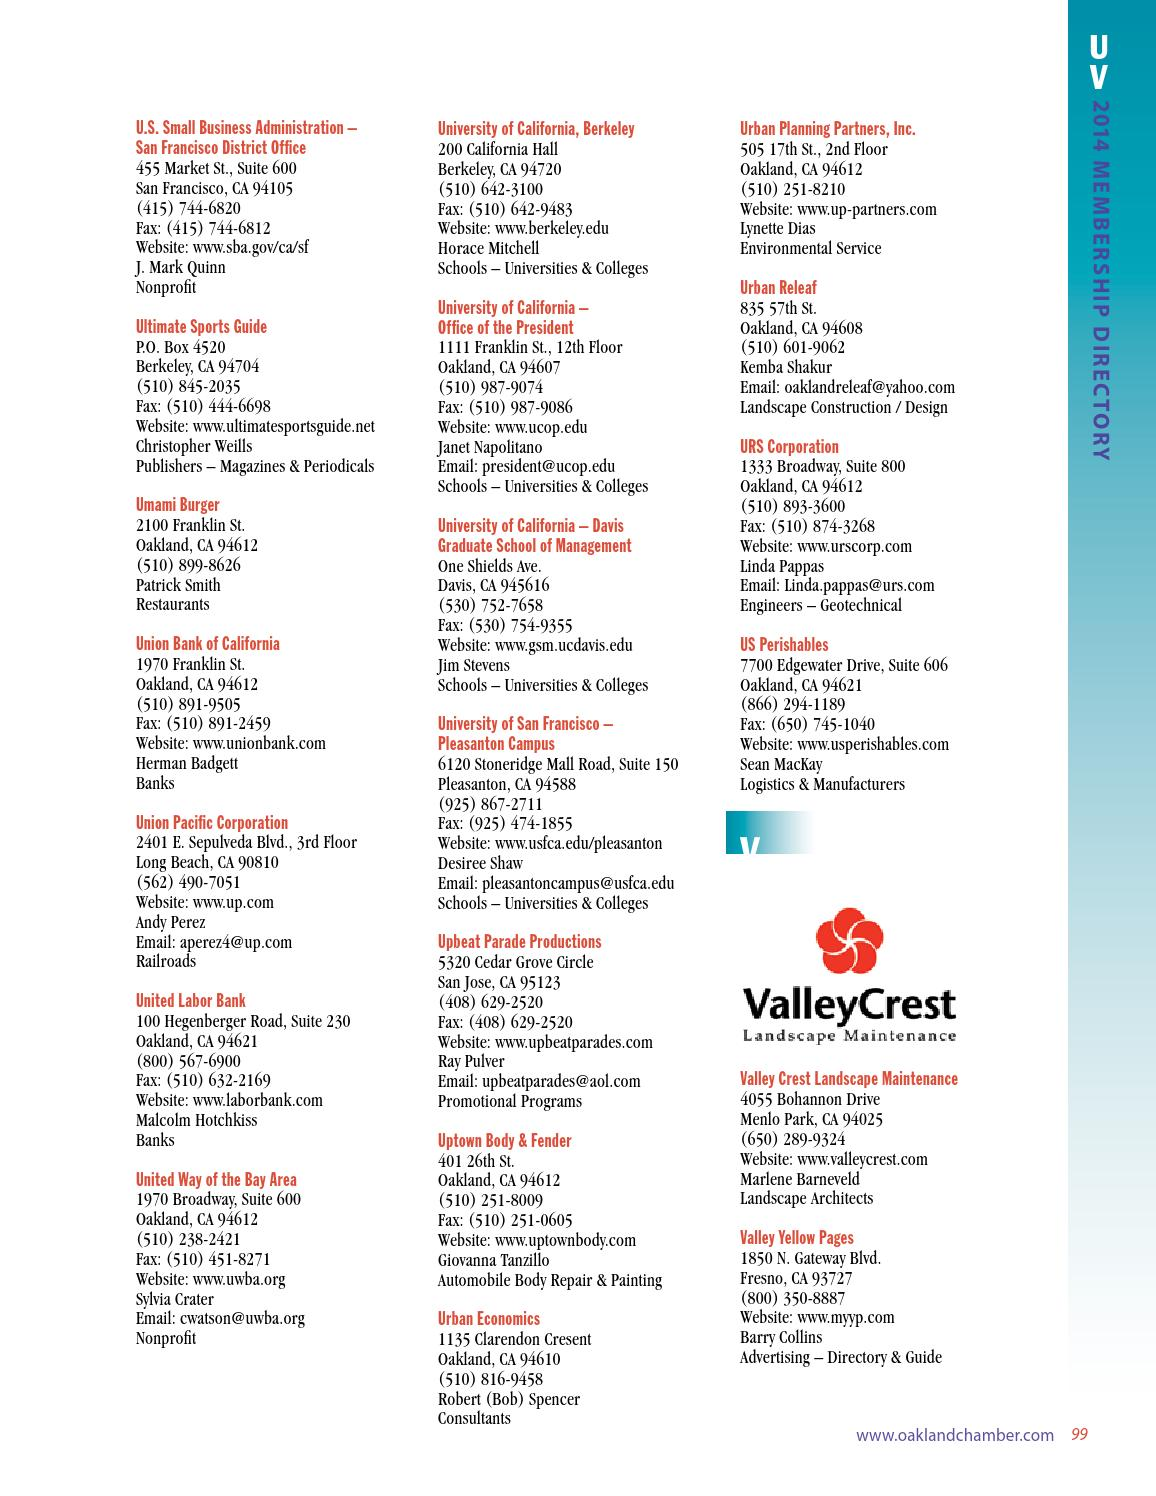 2014 Oakland Metropolitan Chamber Of Commerce Membership Directory By